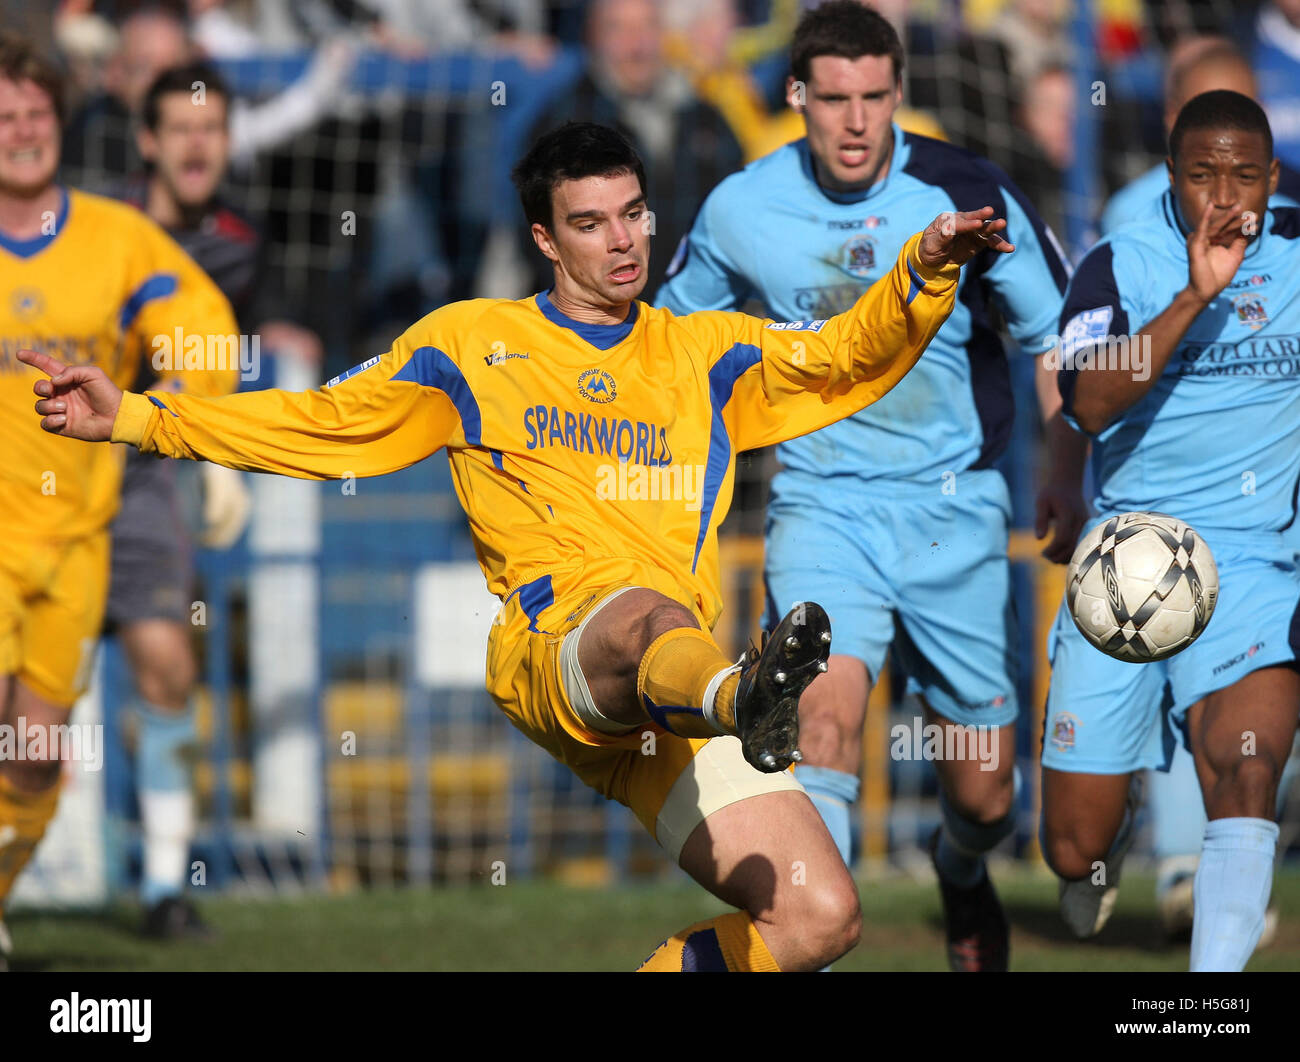 Tim Sills of Torquay - Grays Athletic vs Torquay United - Blue Square Premier at the New Rec - 01/03/08 - Stock Image